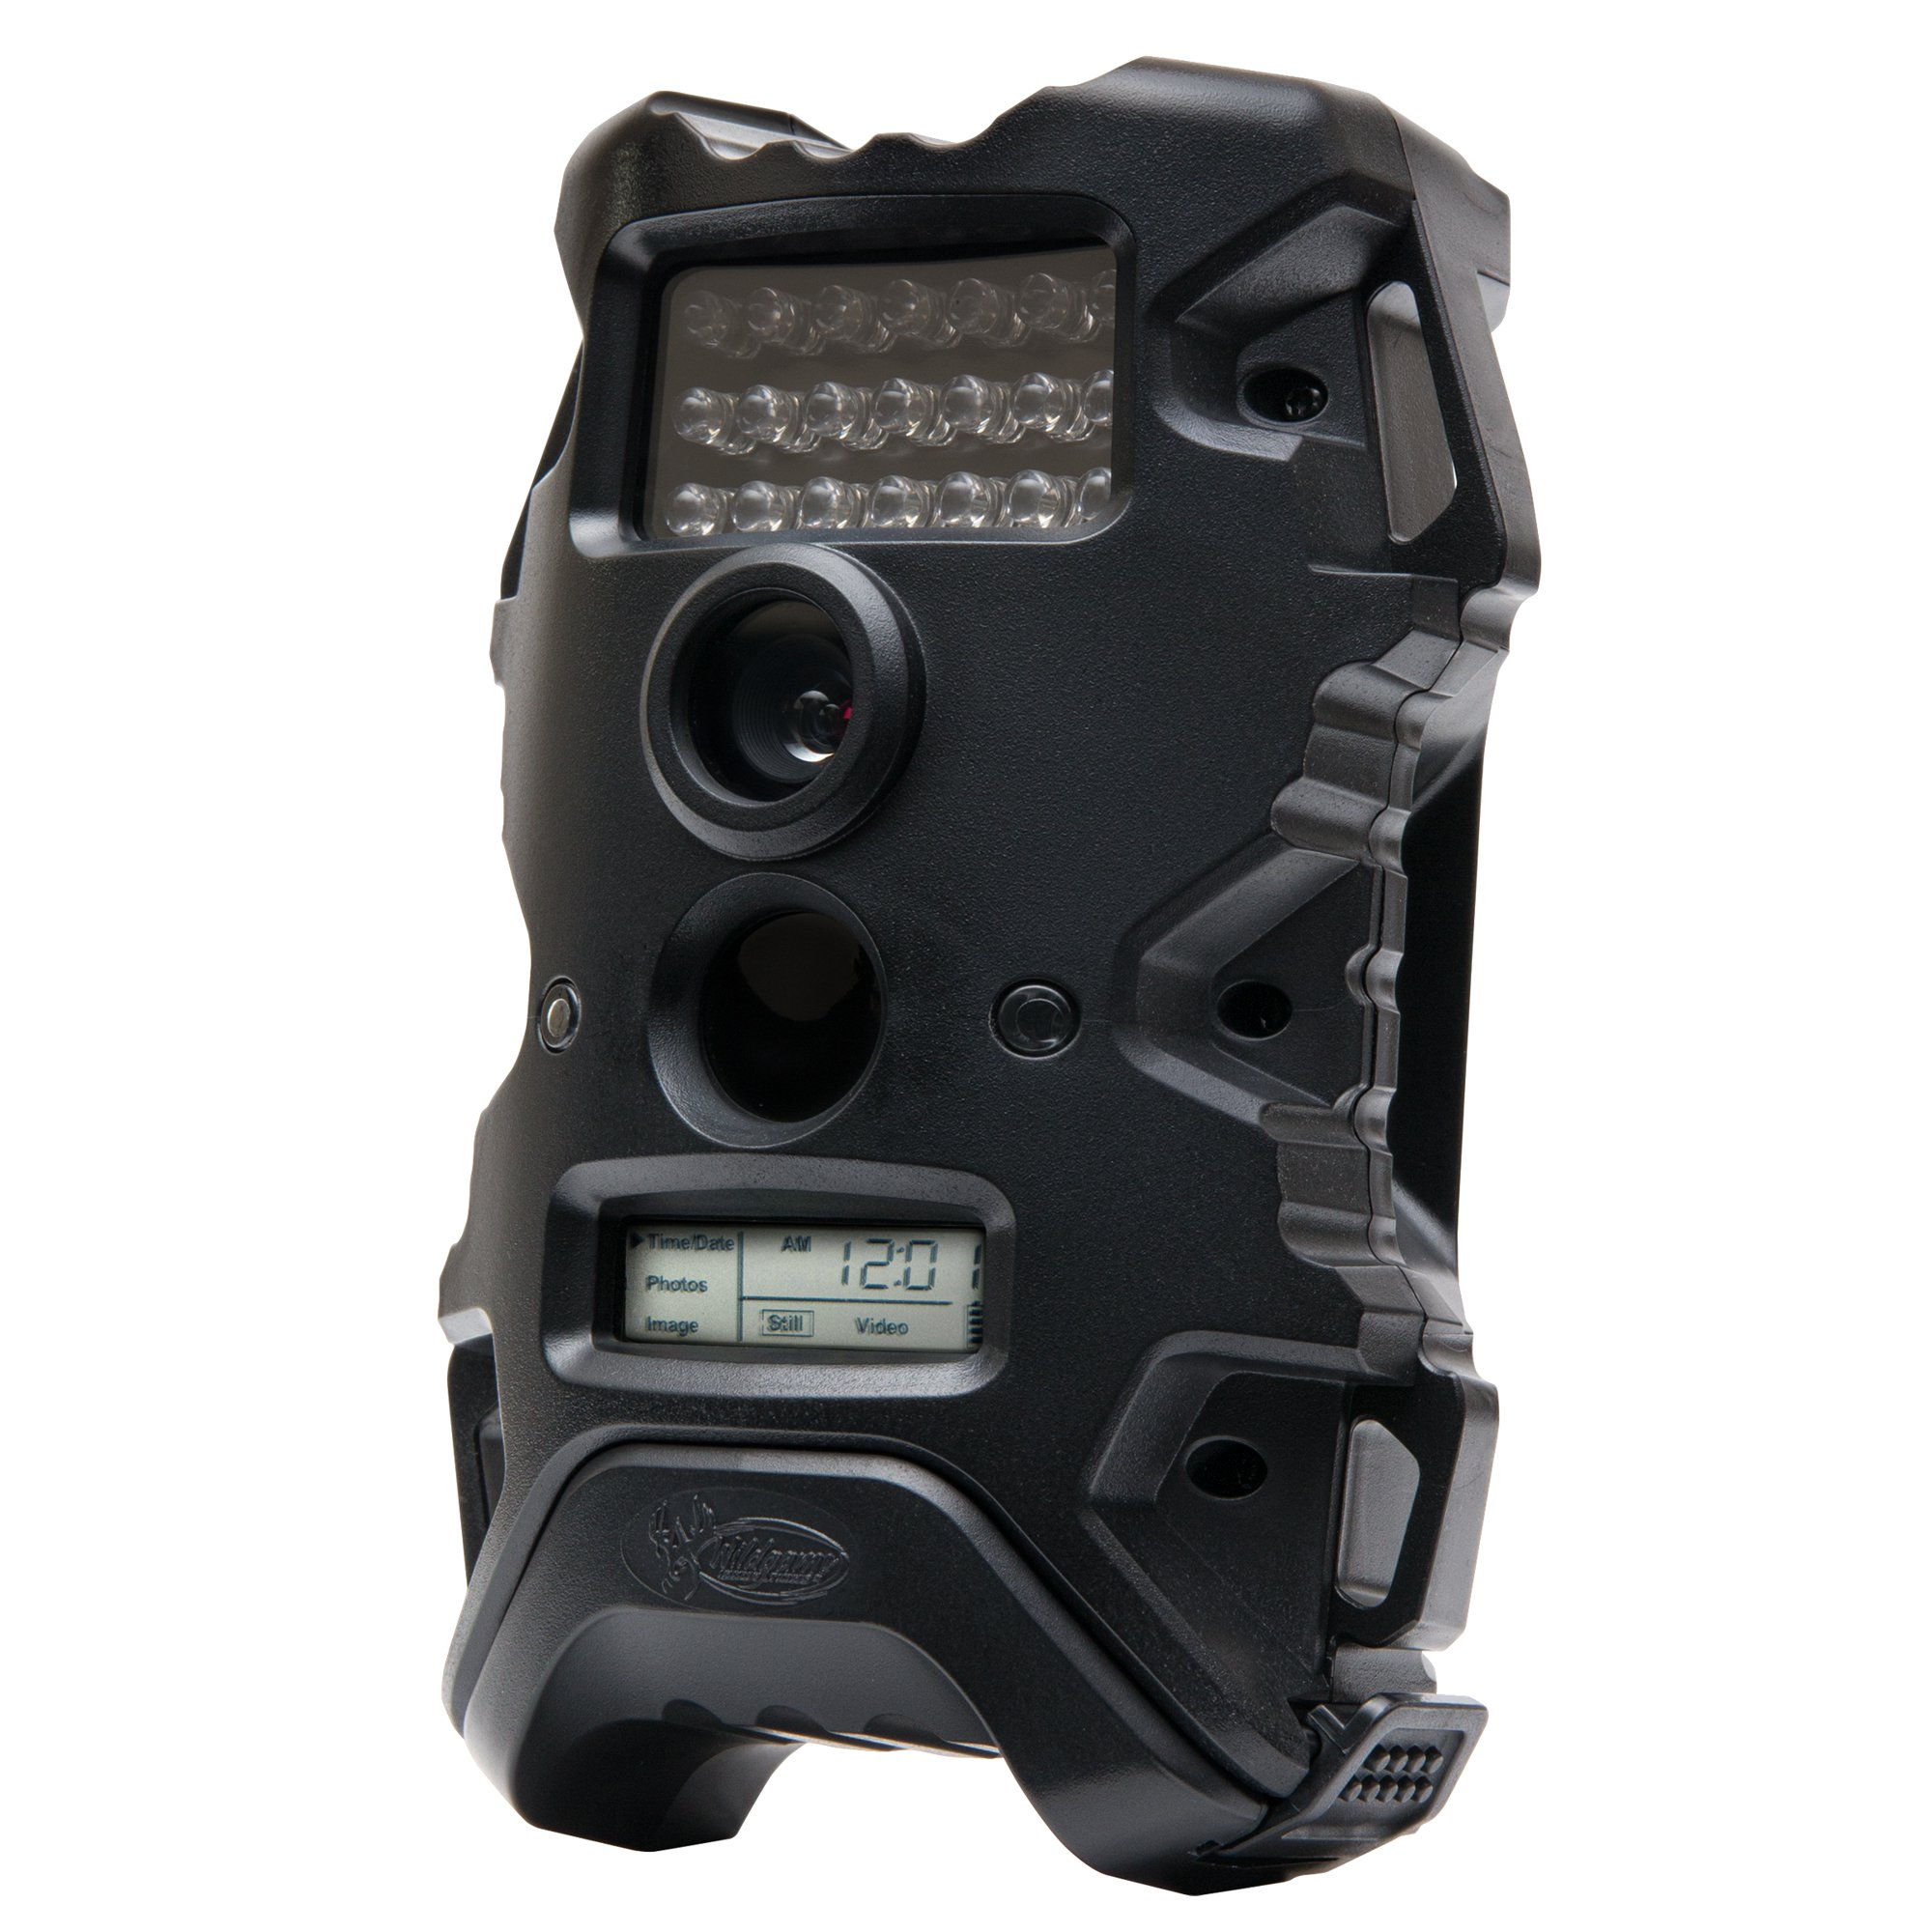 Wildgame Innovations Terra 7 Lightsout 10MP Video IR Hunting Game Camera, Black